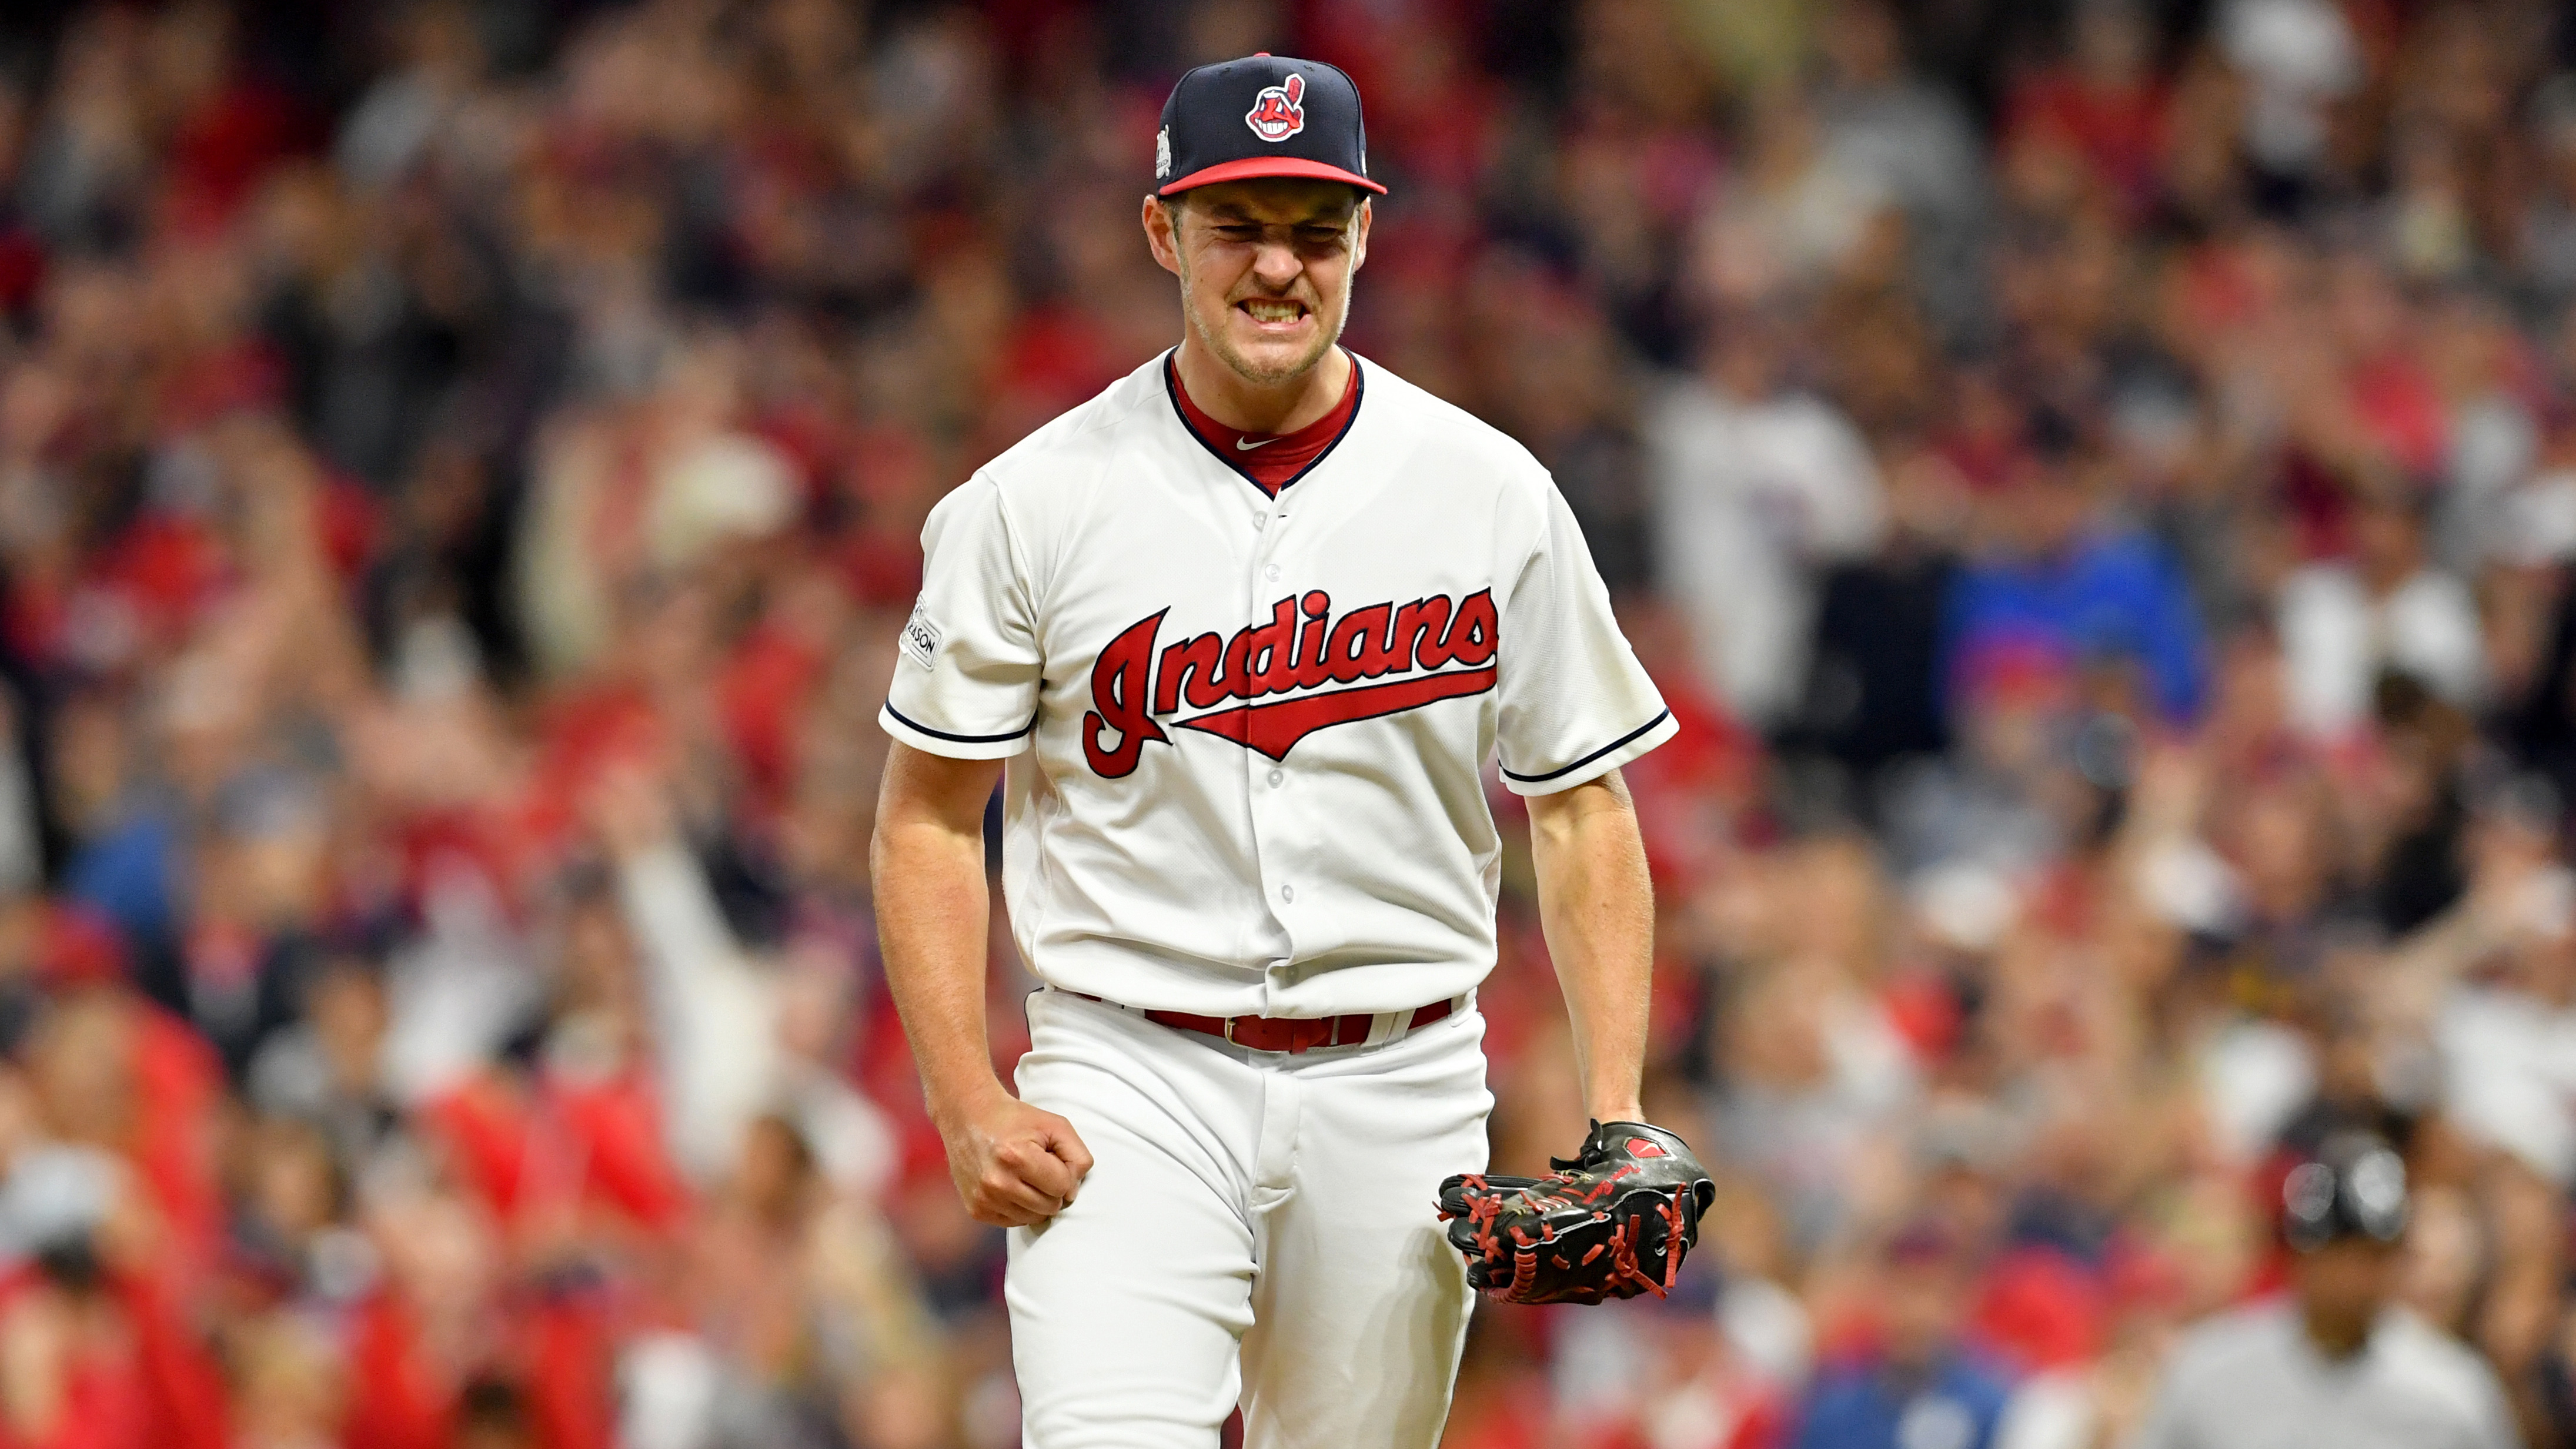 Indians-trevor-bauer-twitter-account-access